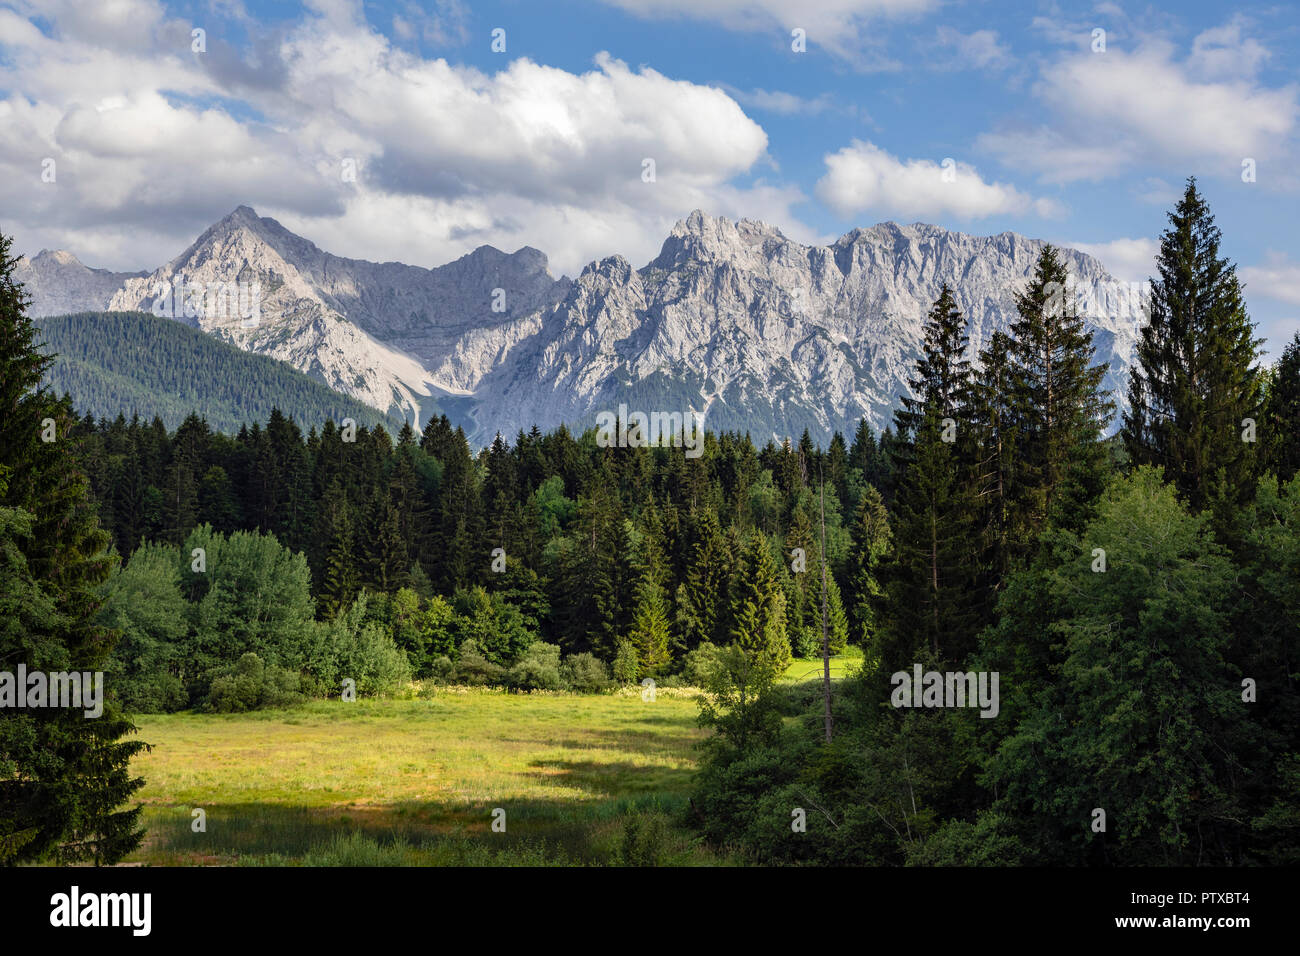 View from Tennsee to the Karwendel Mountain, Krün, Germany - Stock Image